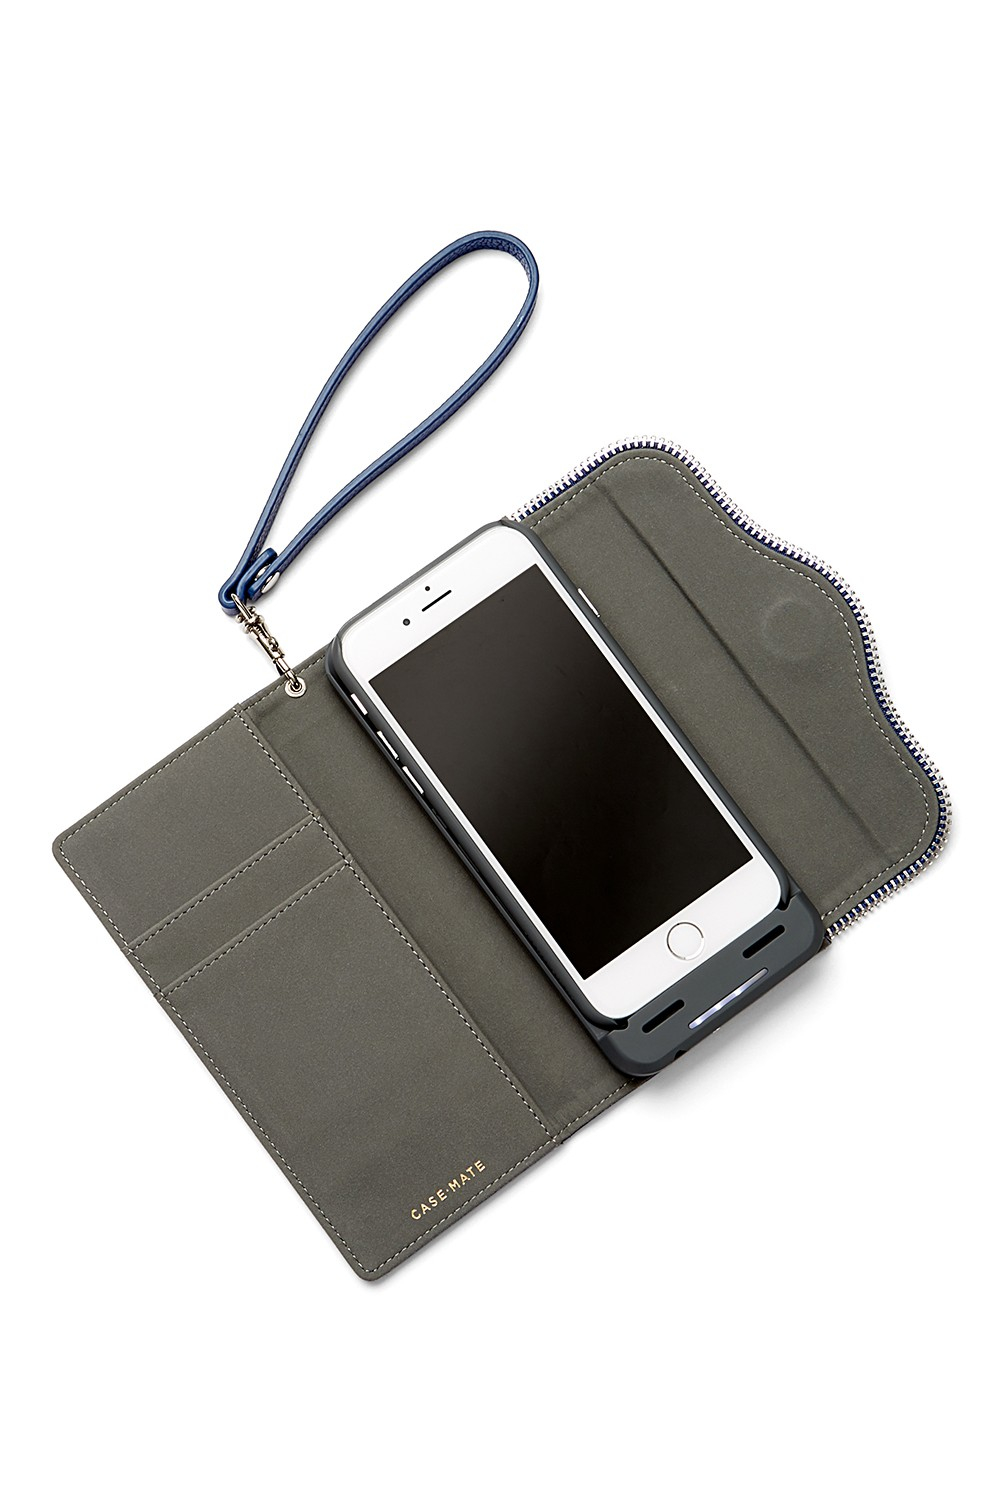 Charging Wristlet Iphone